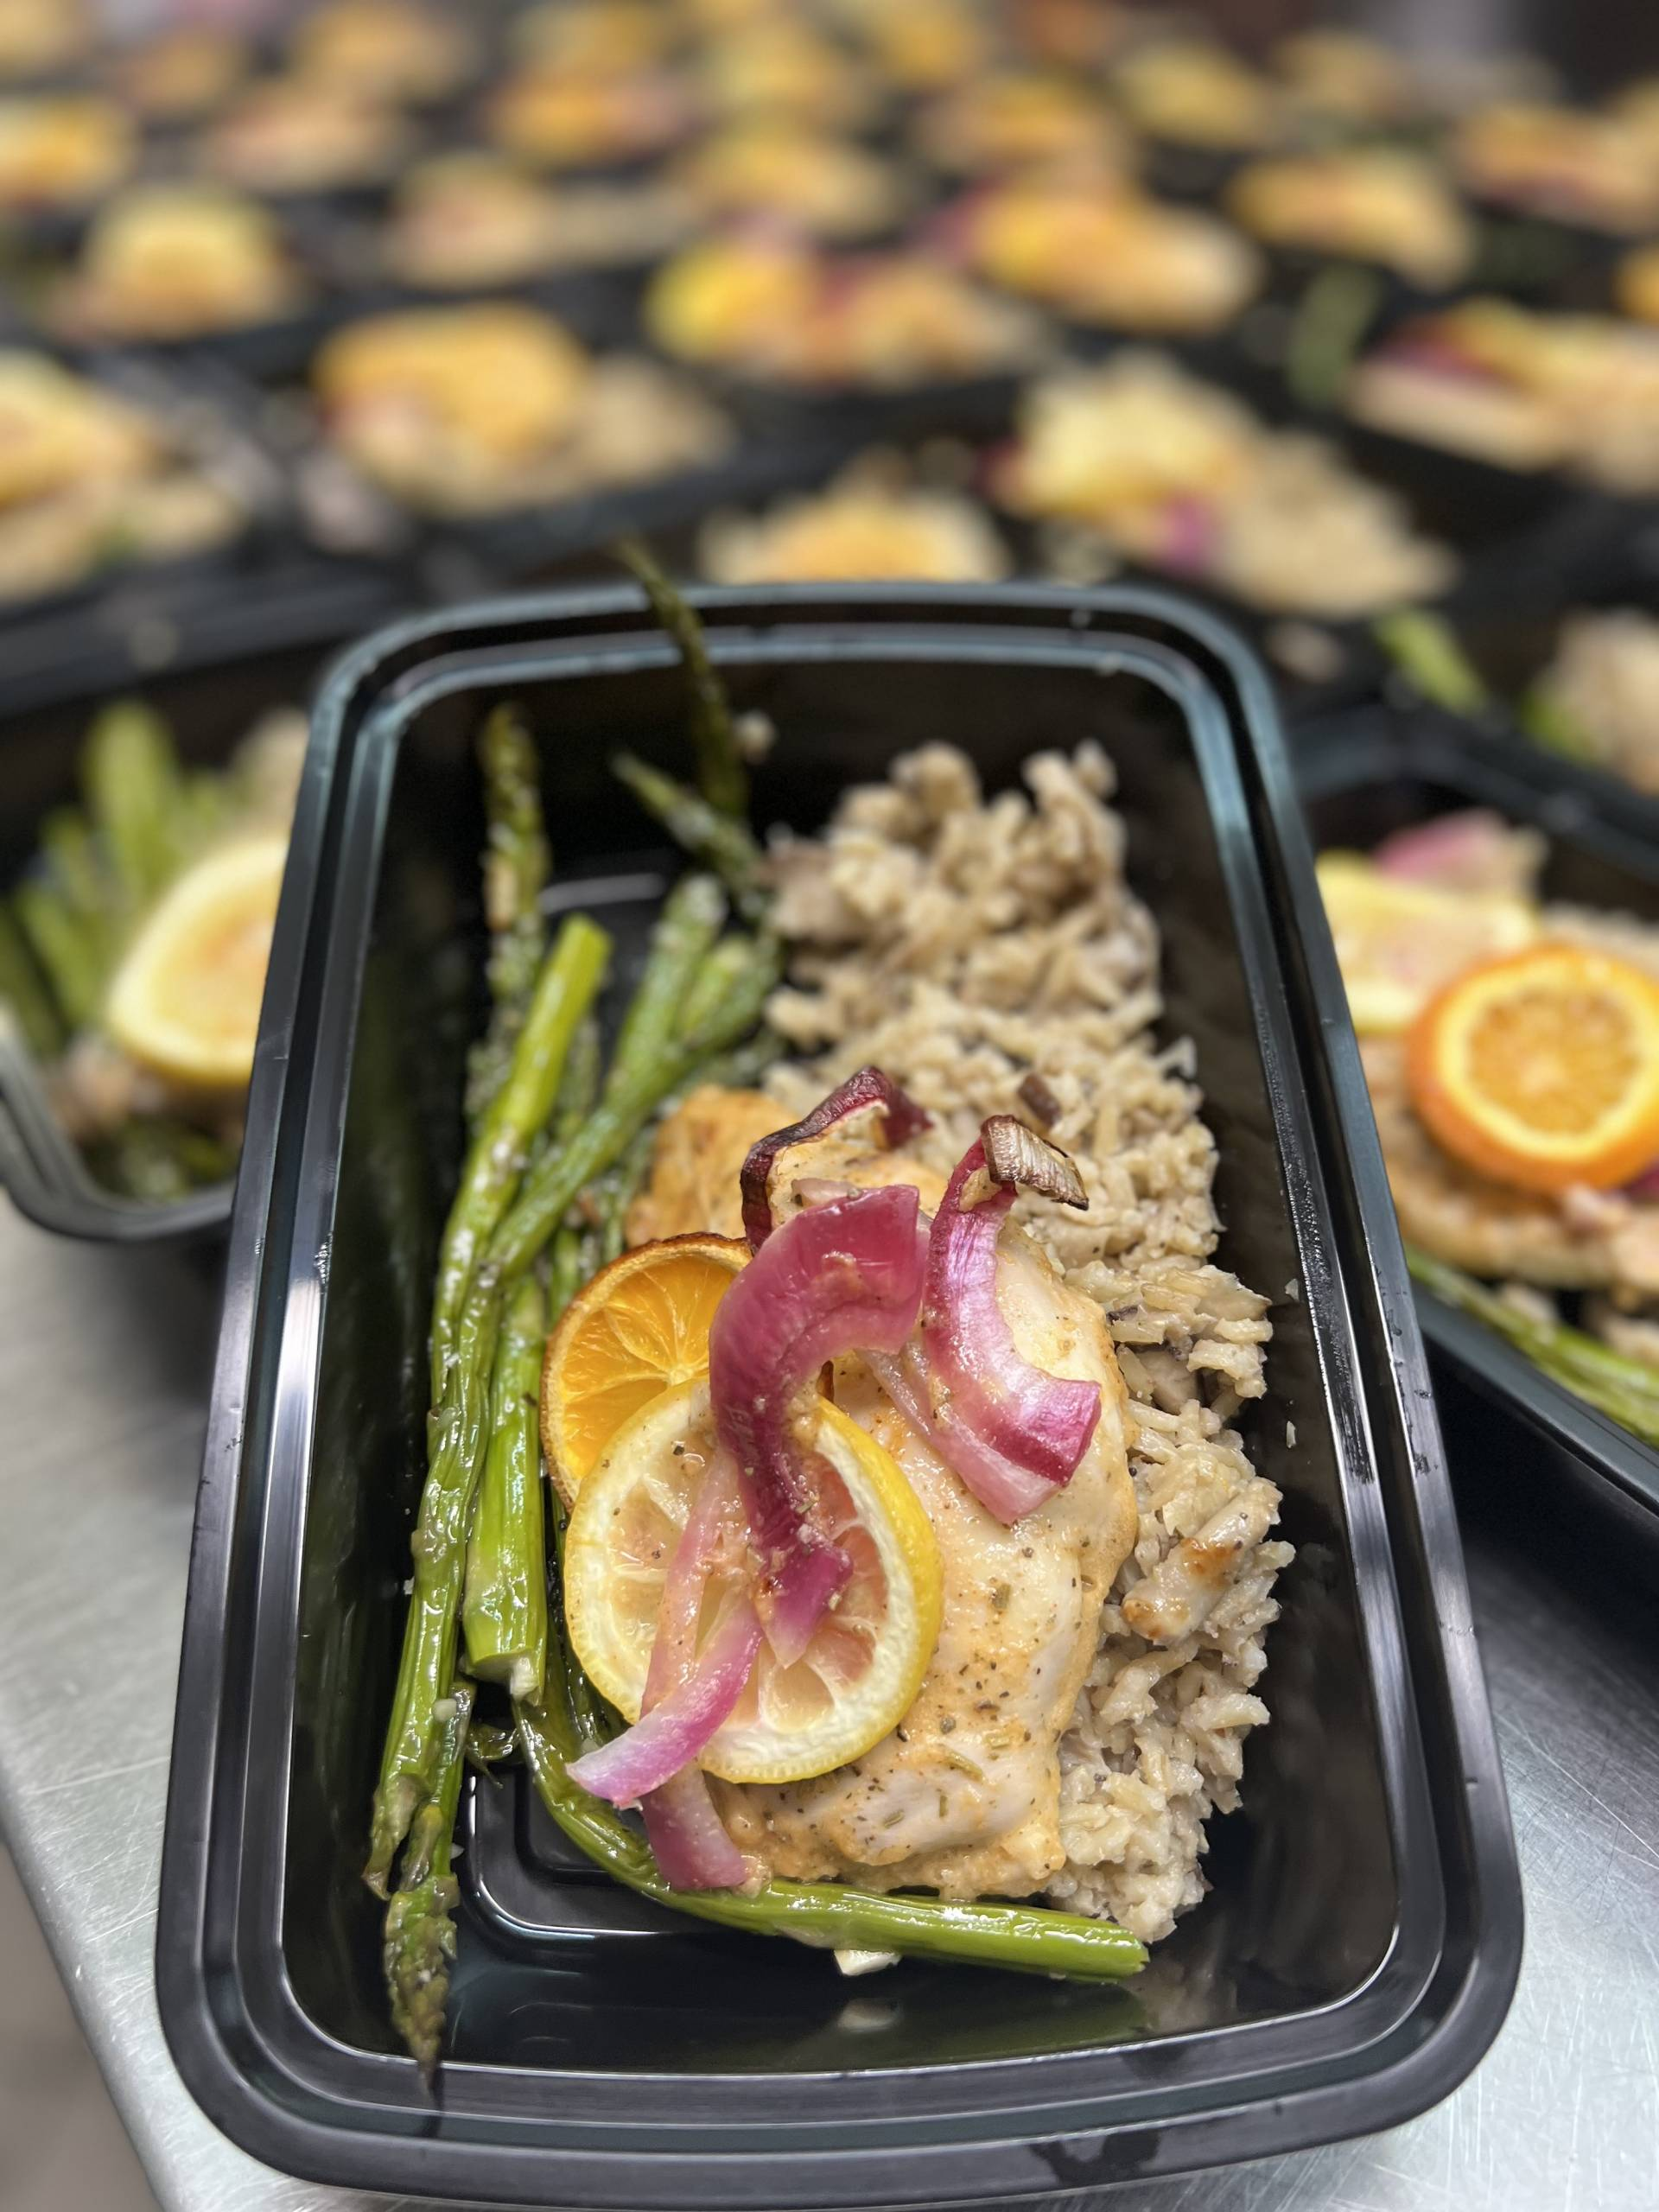 Lemon Herb Chicken with Mushroom Risotto and Asparagus